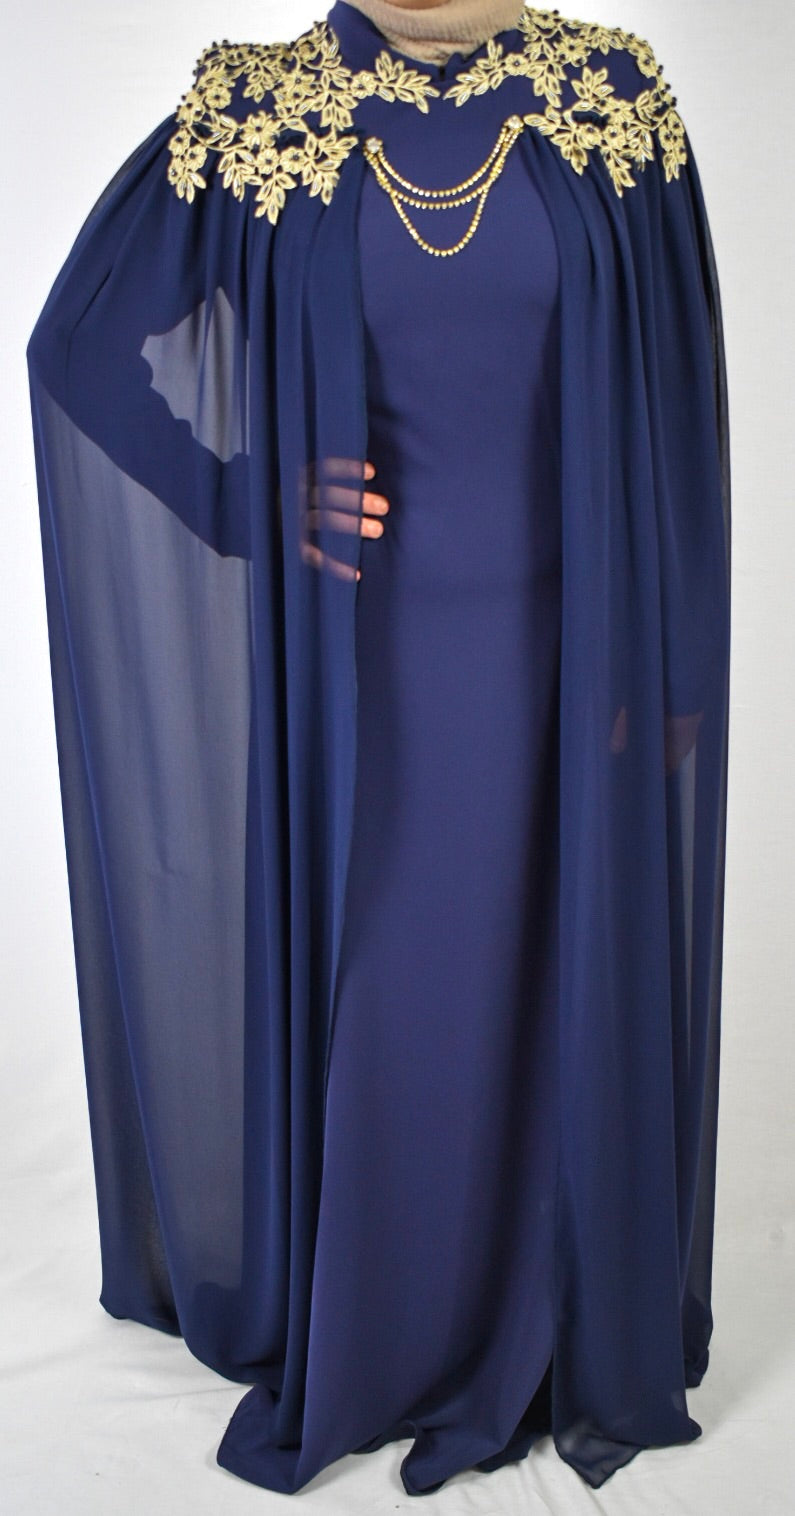 Throne Cape Dress - Navy